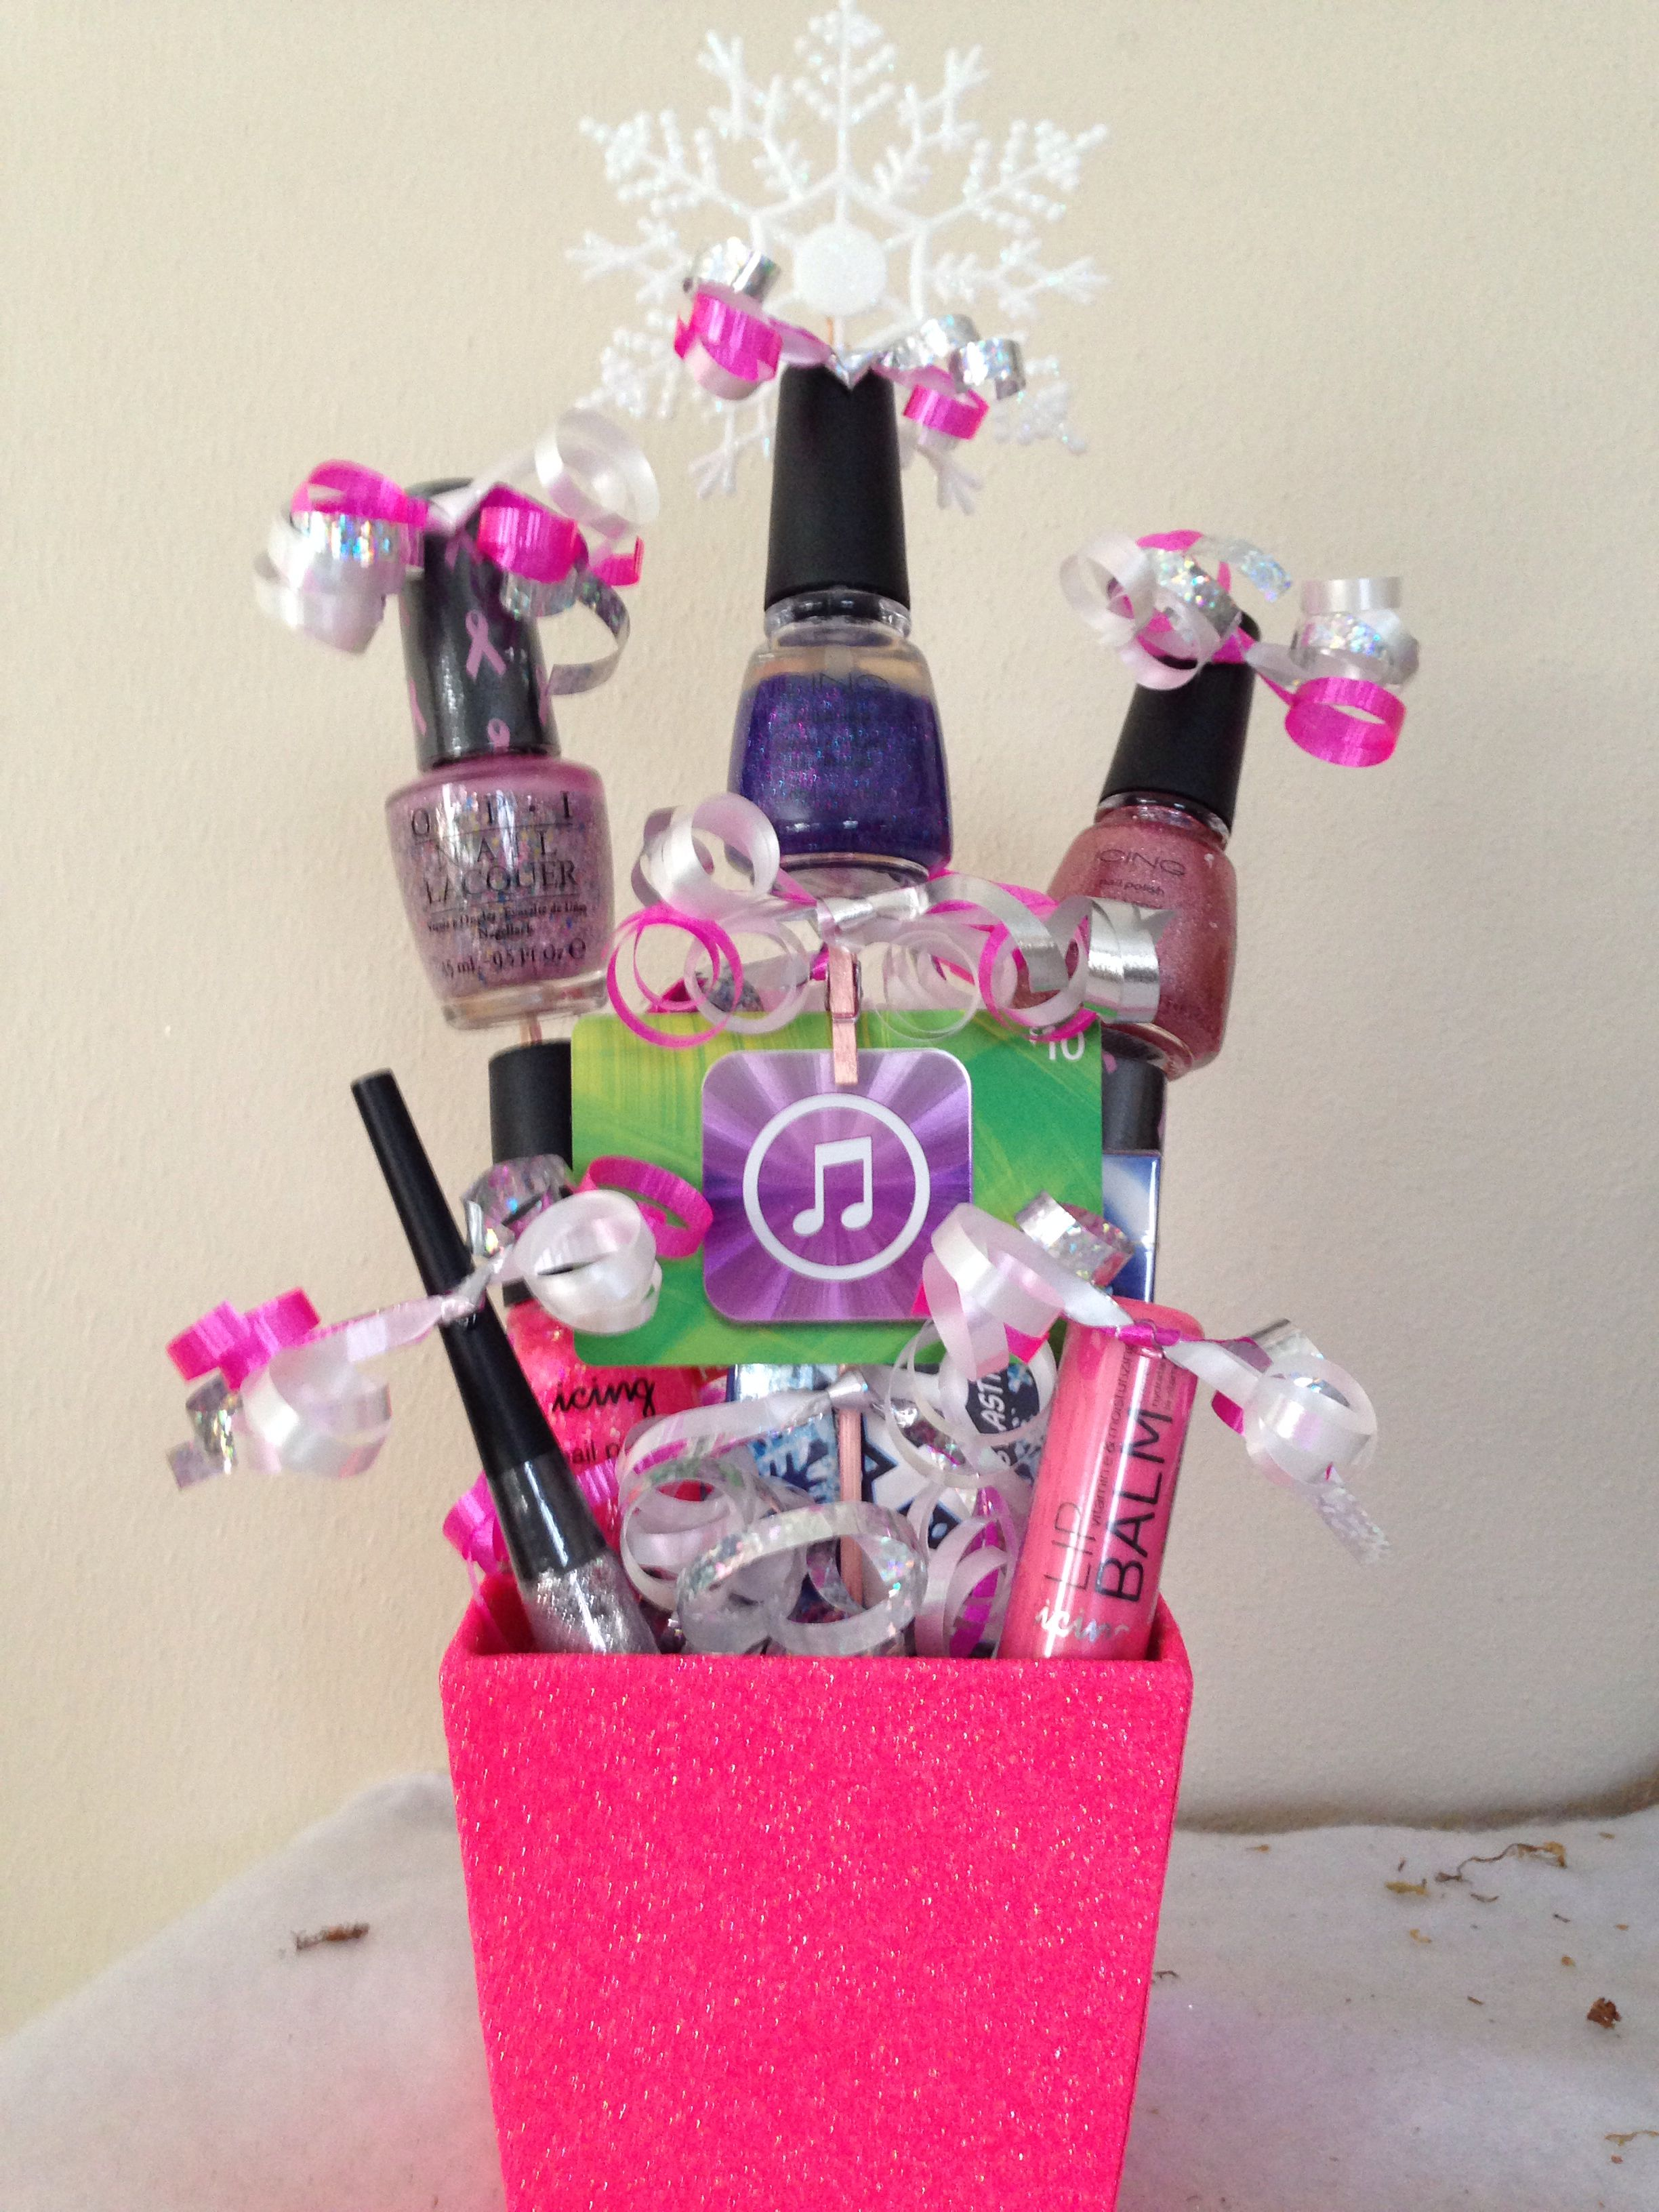 Diy Gift Ideas For Girlfriend Teen Gift Basket I Like The Cute Bows On Top Of The Gifts